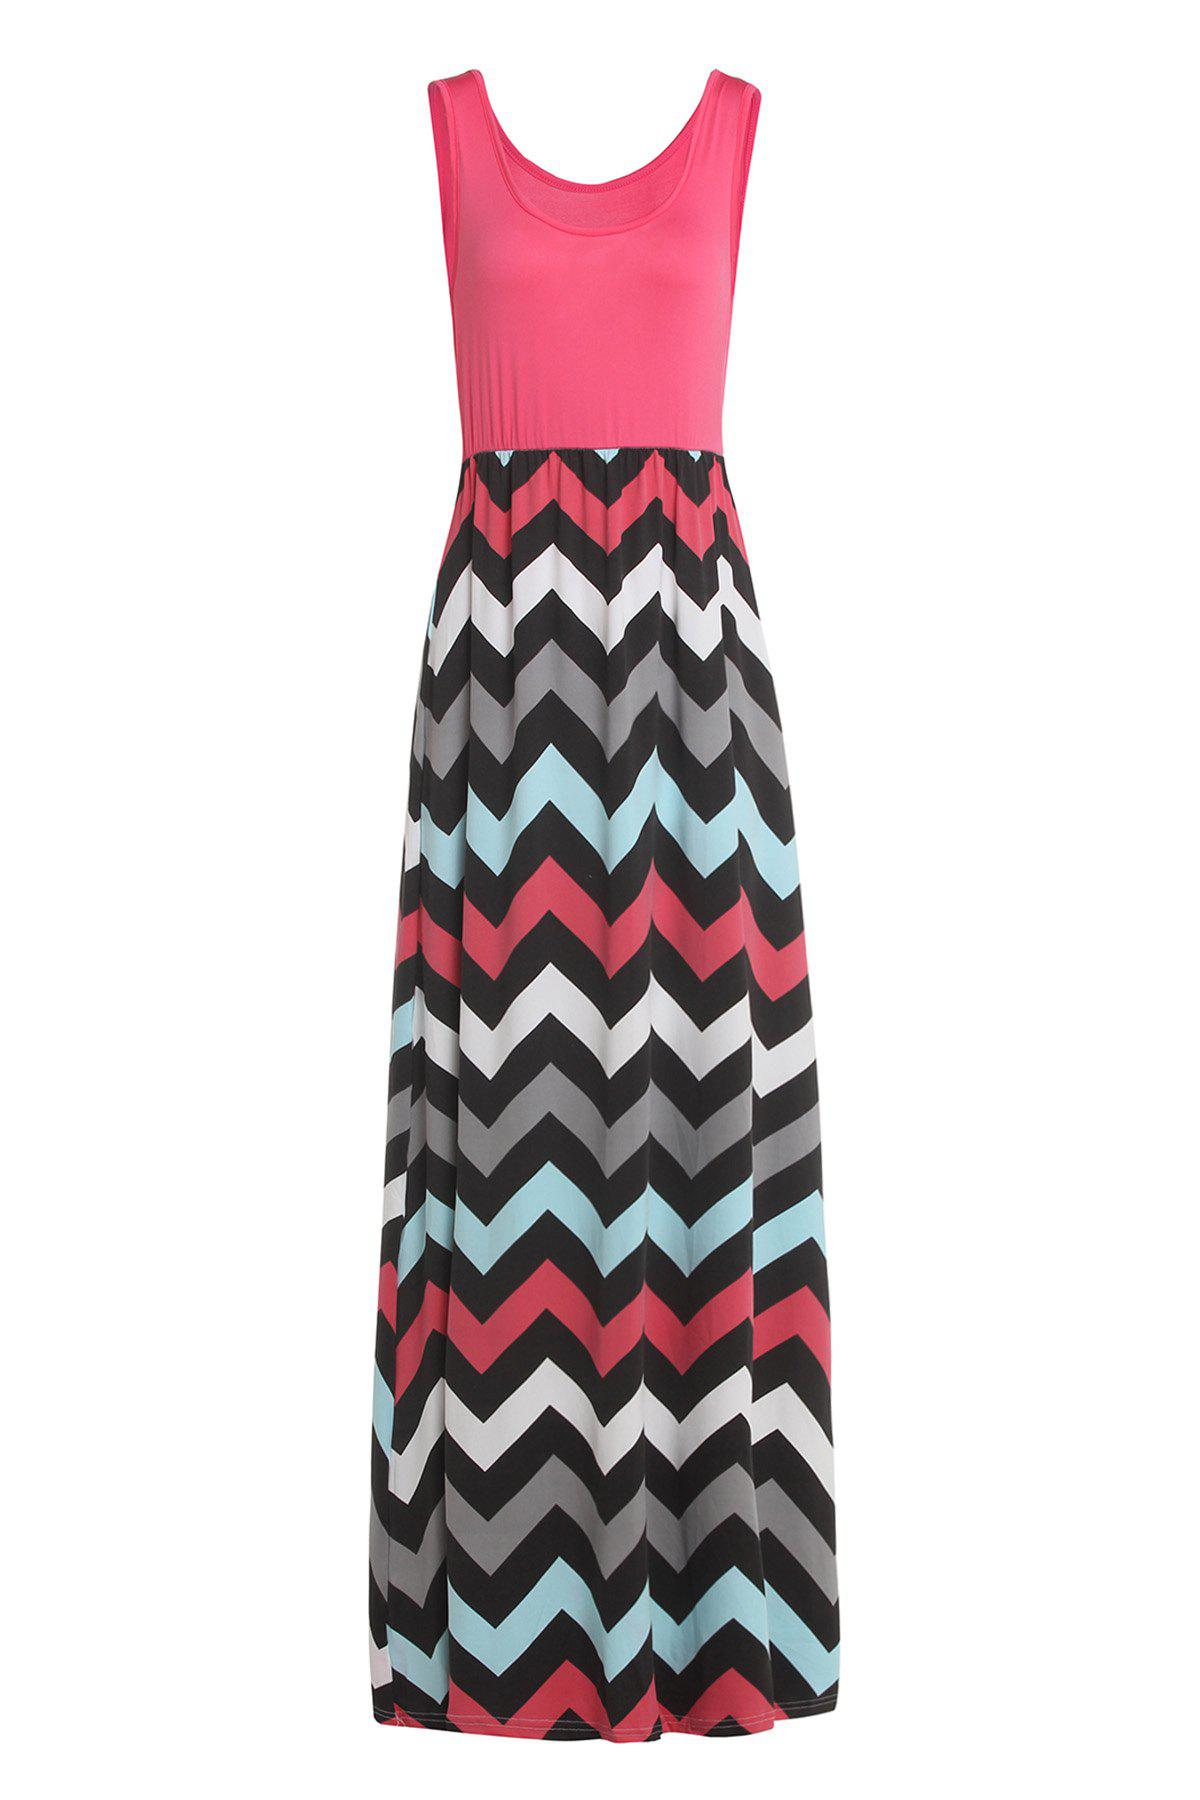 Sleeveless Scoop Neck Striped Long Dress - WATERMELON RED S